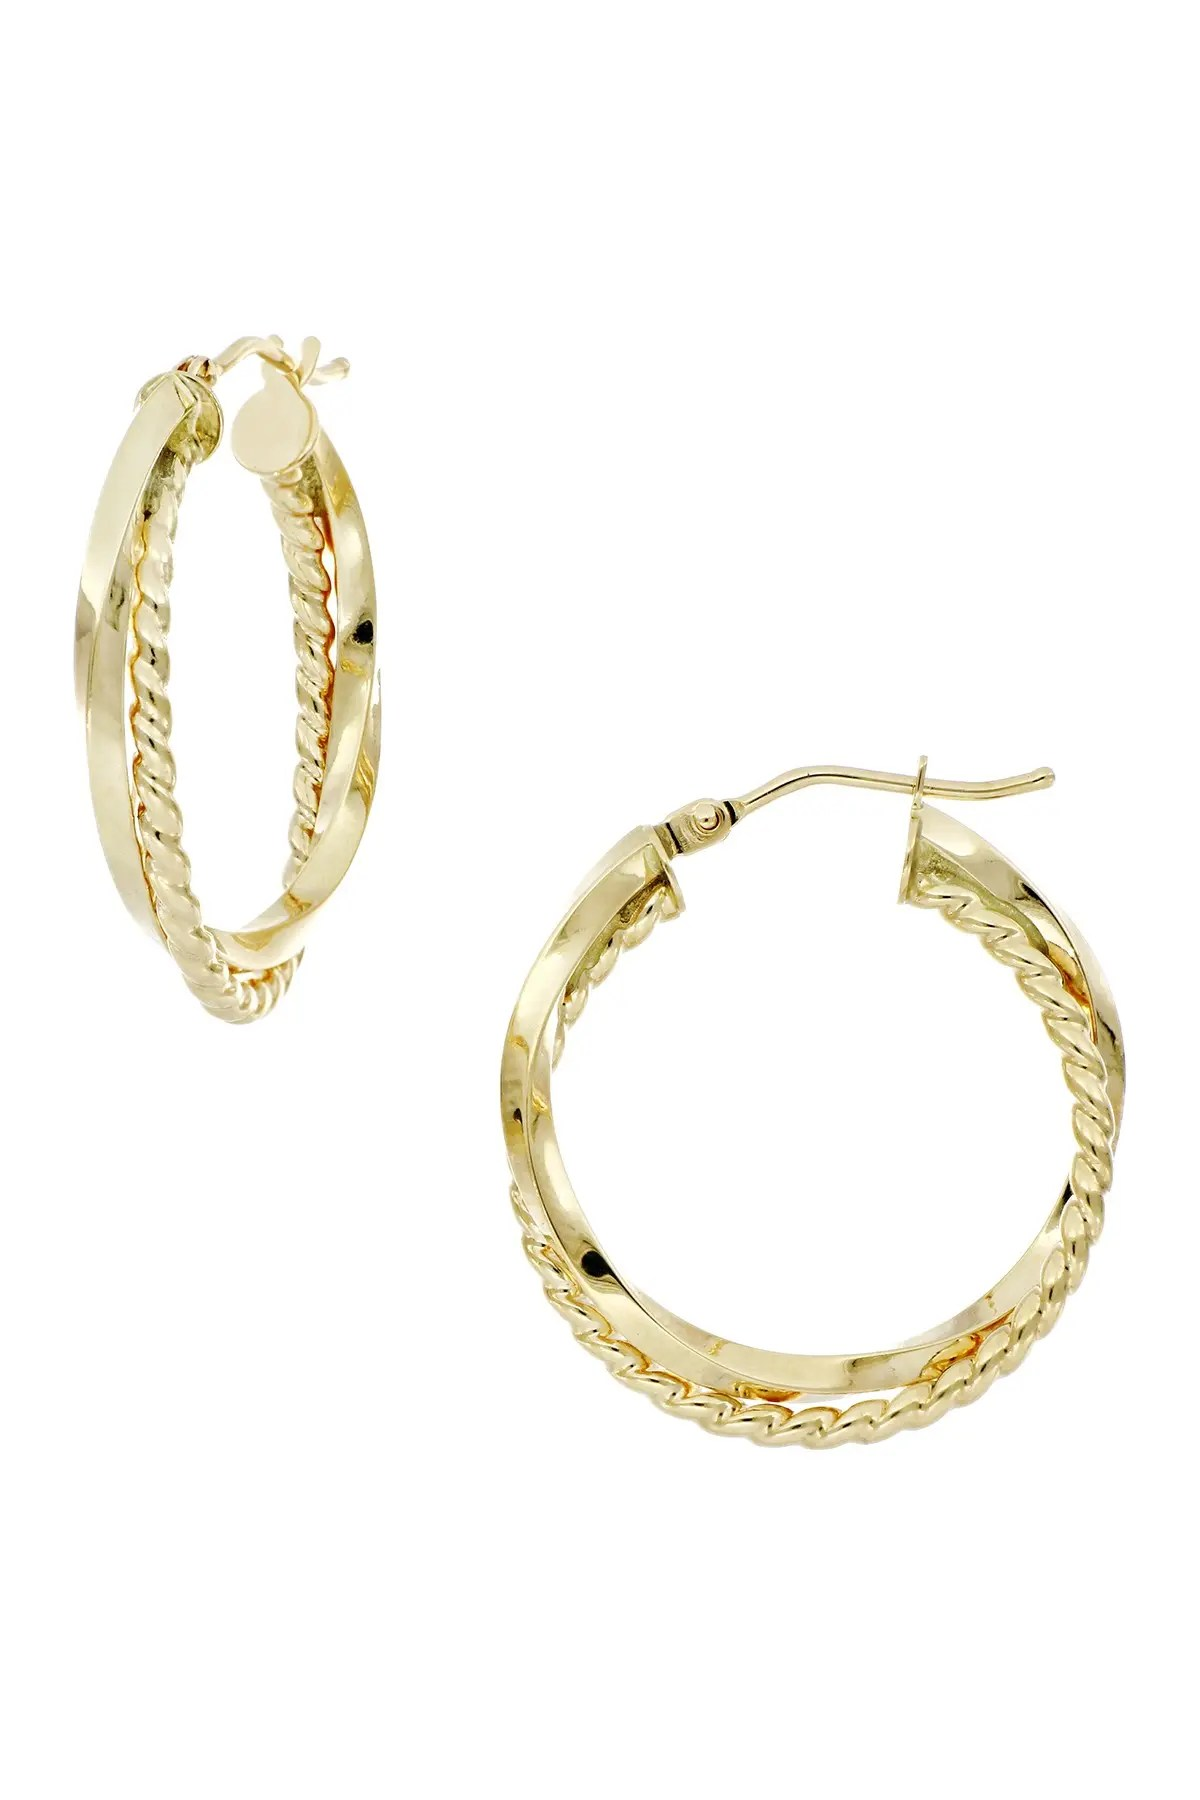 bony levy 14k yellow gold 20mm twisted crossover hoop earrings nordstrom rack